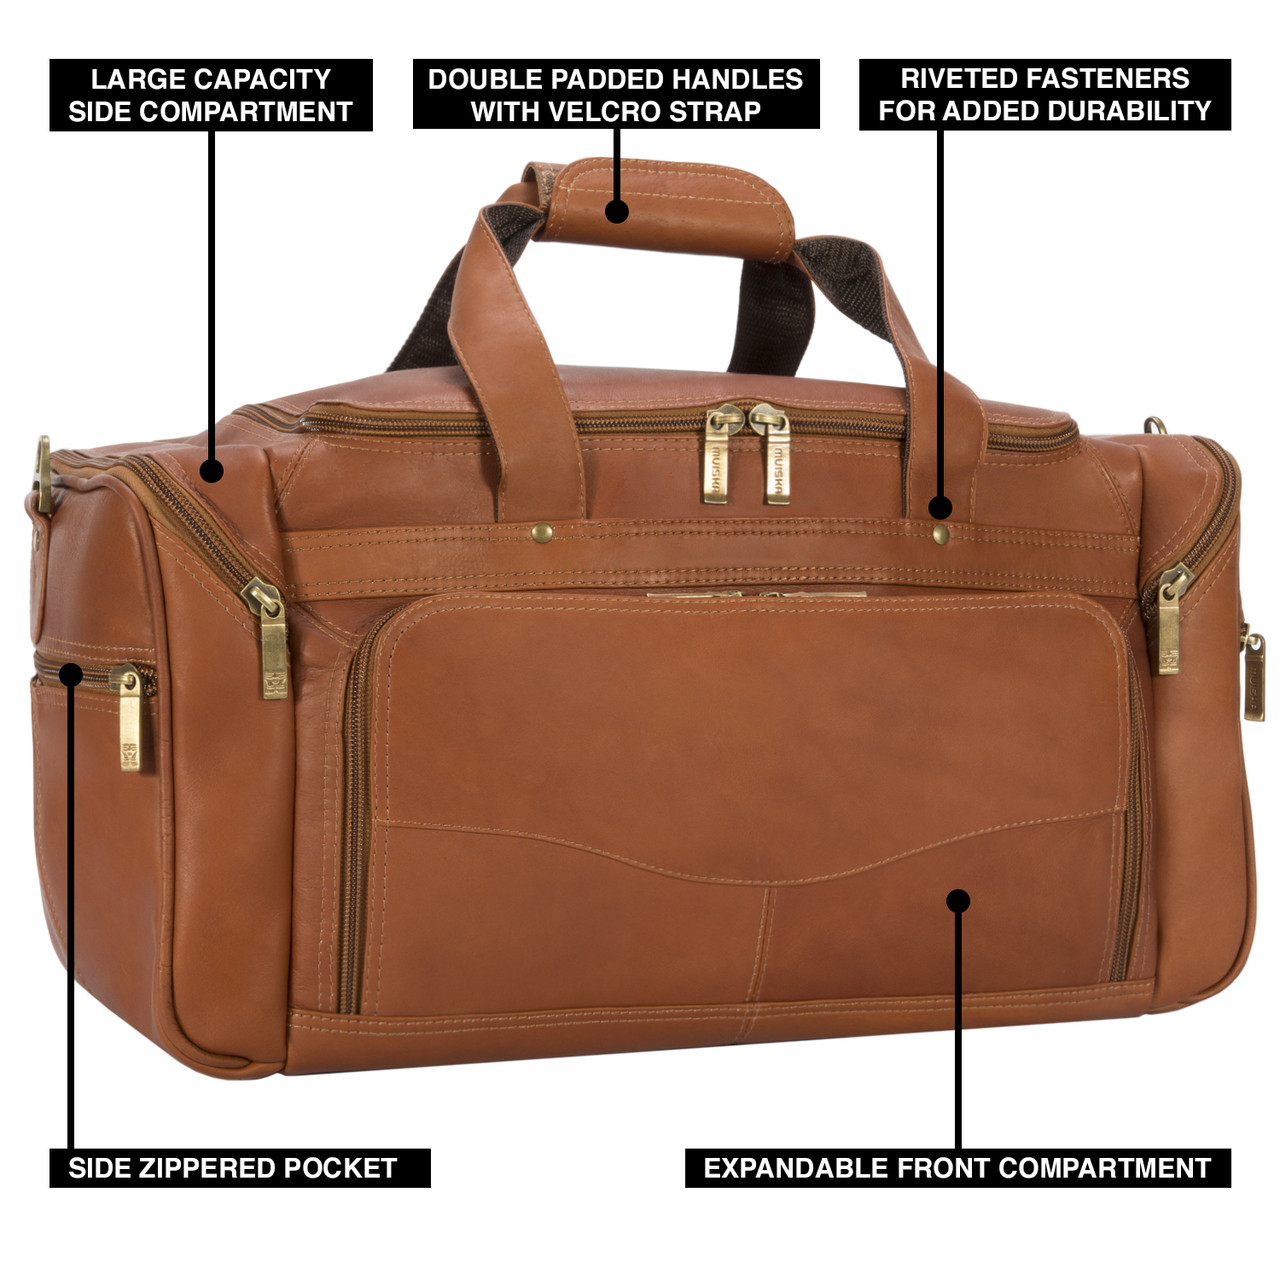 Muiska - Hugo - Leather Carry On Travel Bag features a large zippered  front compartment